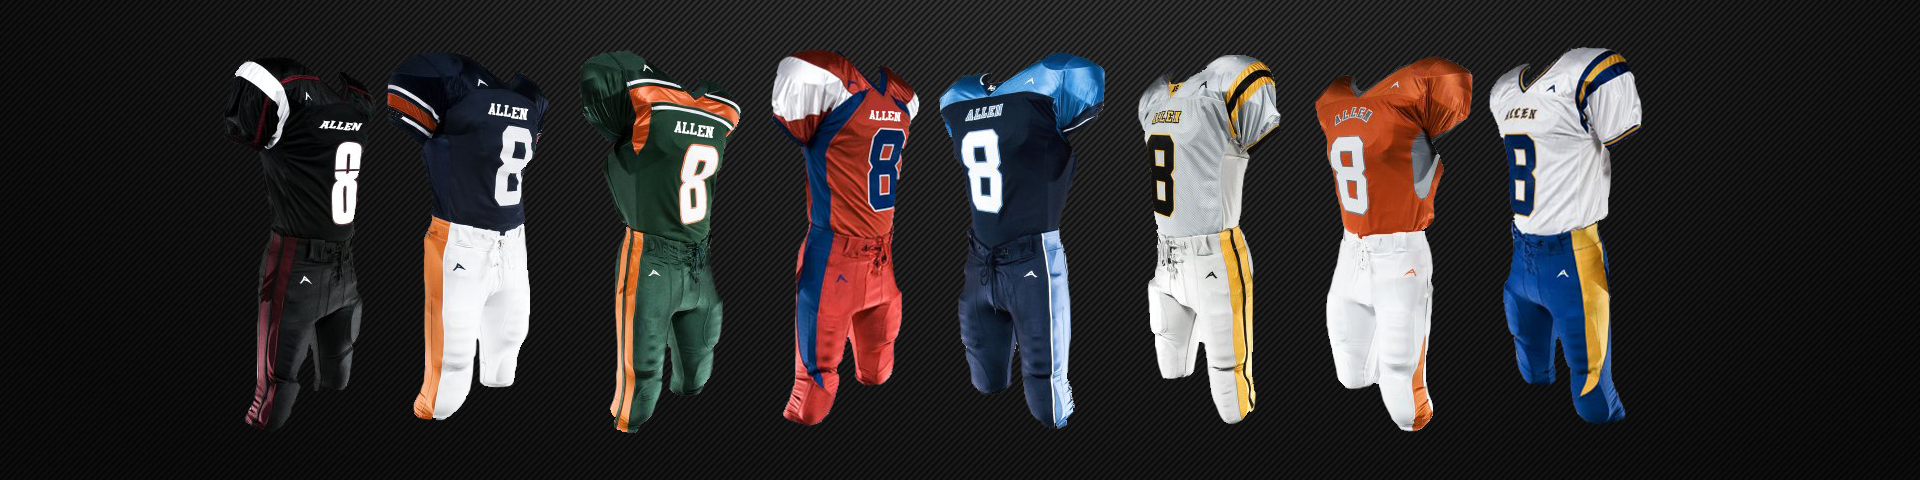 Custom Stock Football Uniforms for Men and Kids Football Teams 005995d212